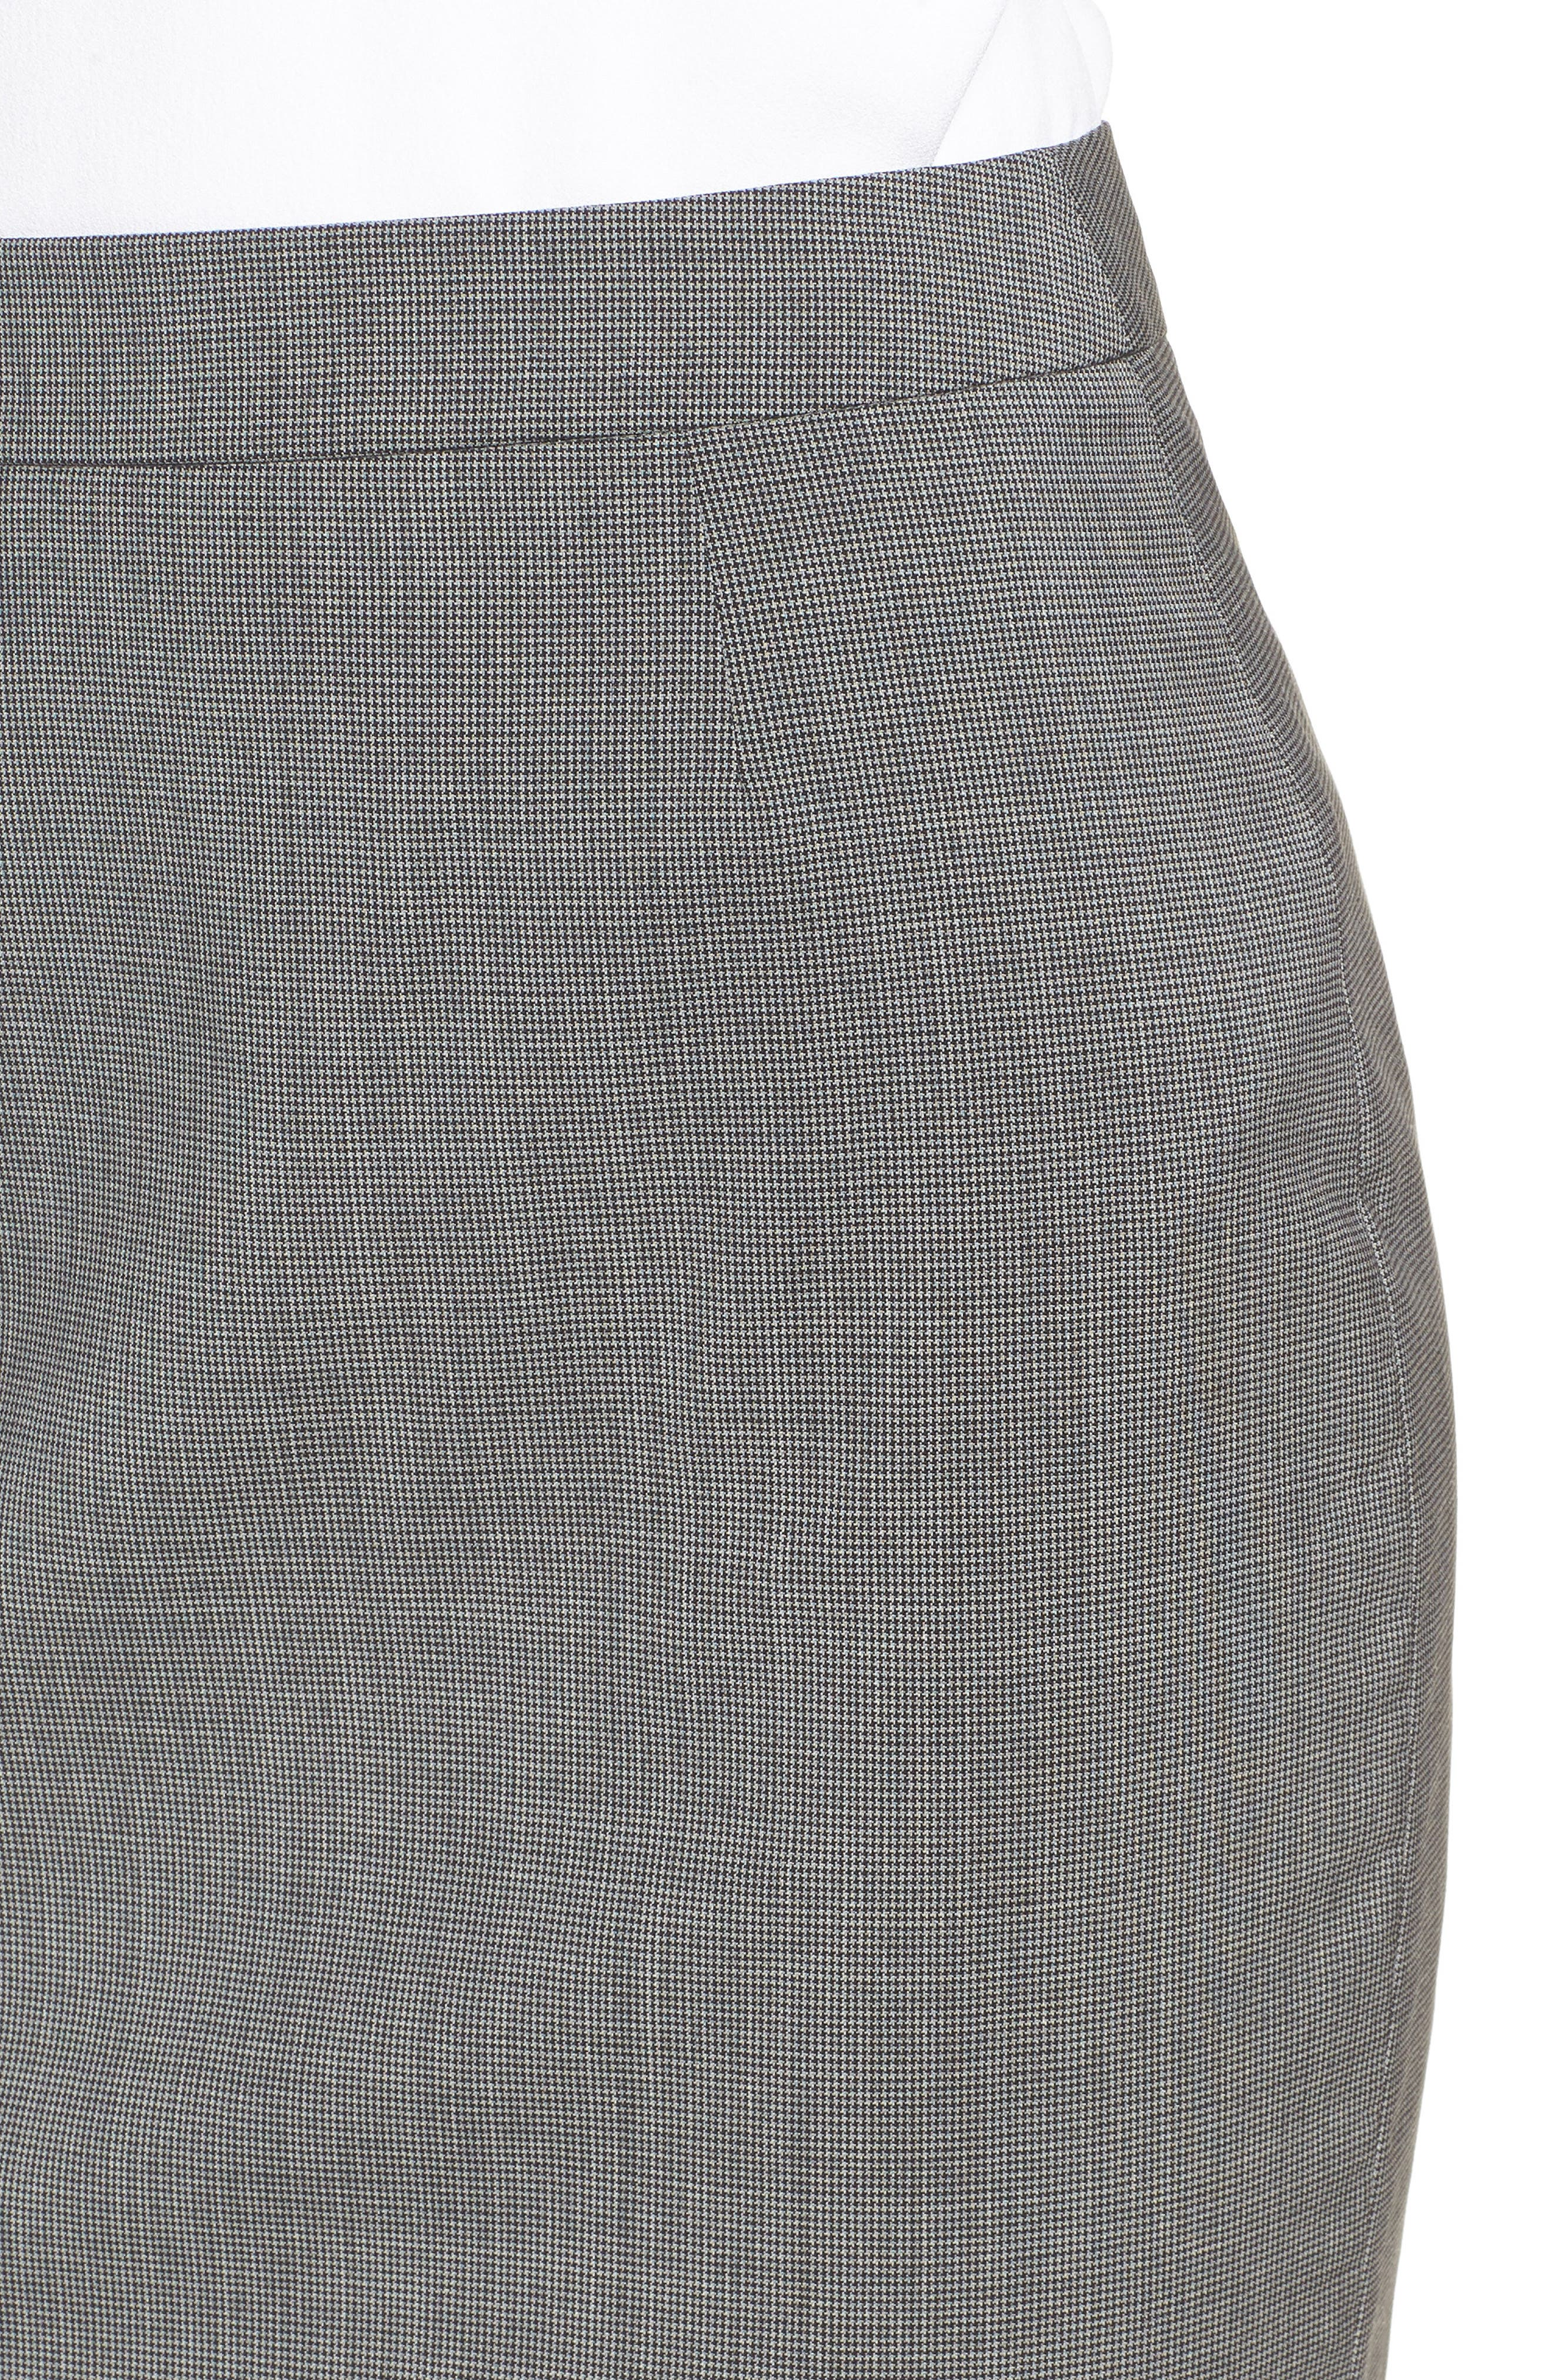 Vimena Mini Houndstooth Stretch Wool Pencil Skirt,                             Alternate thumbnail 4, color,                             060